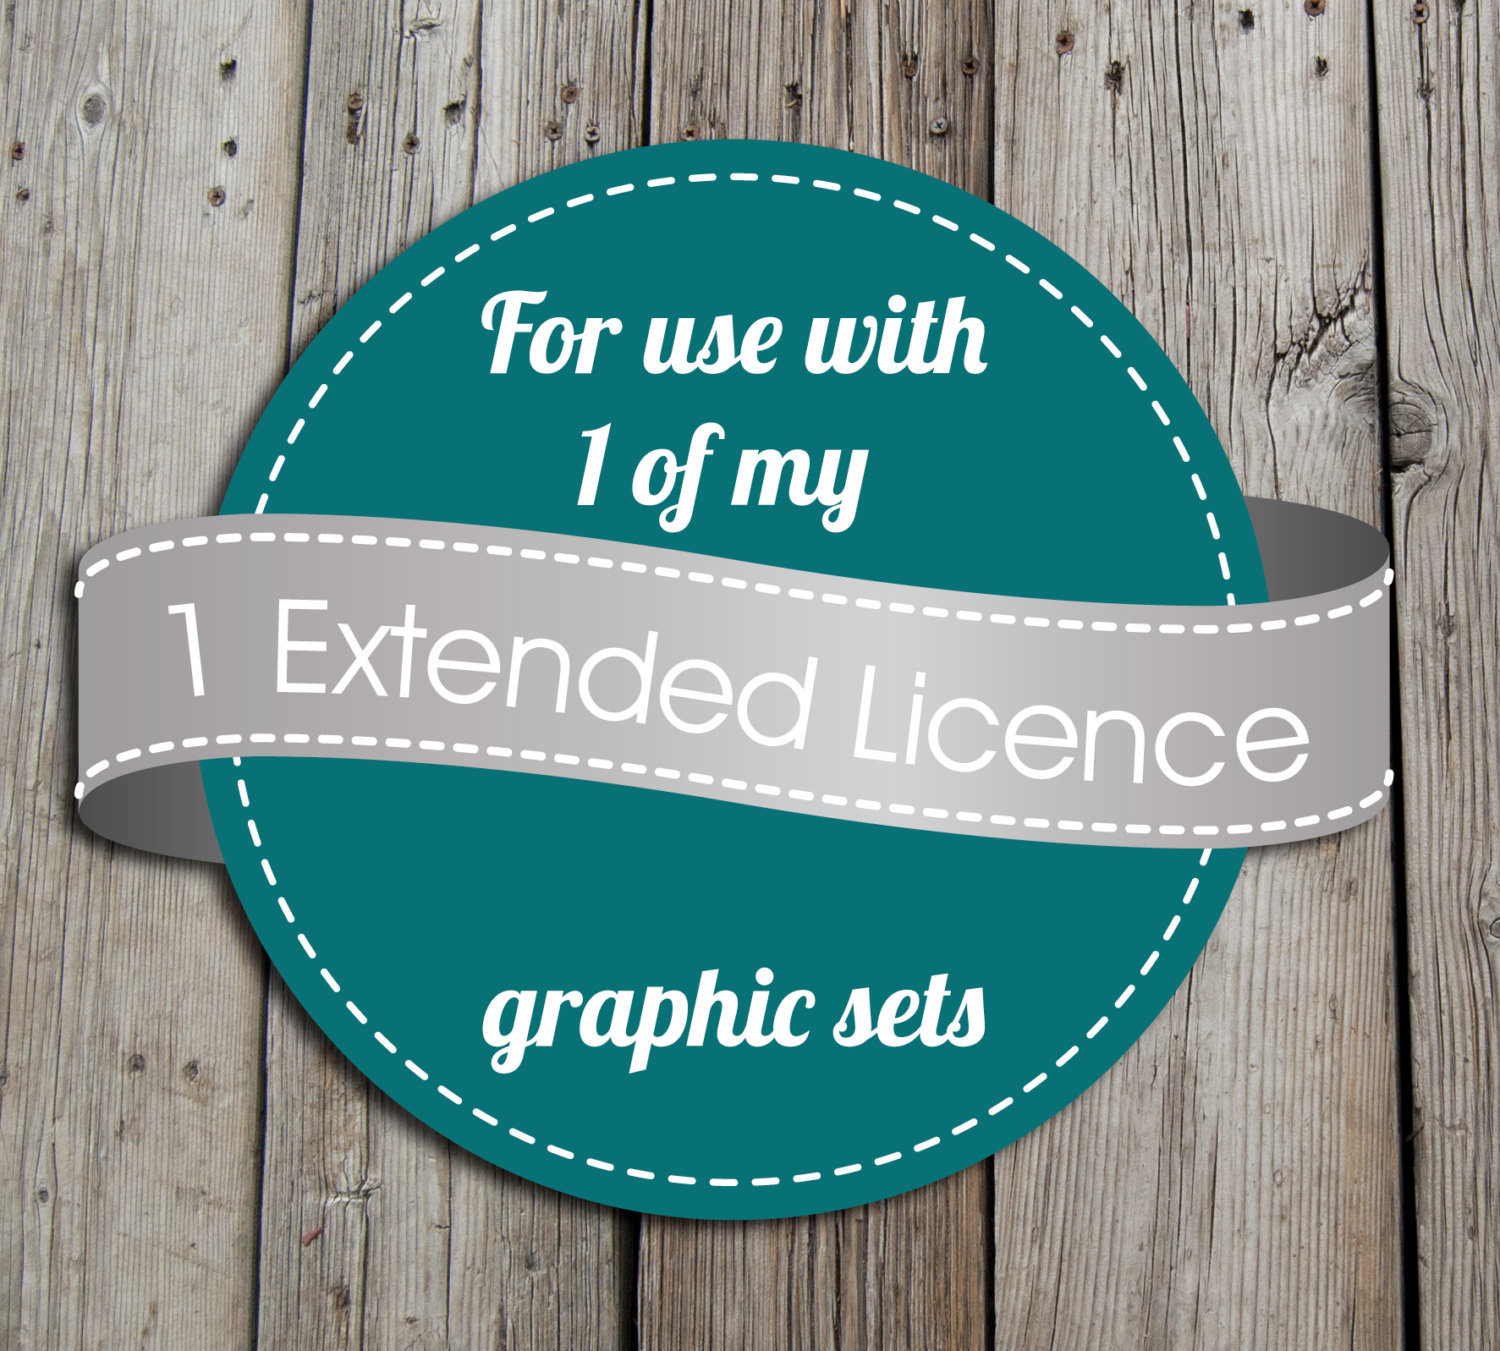 1 Extended license to use with any 1 of my clipart/ graphic sets.